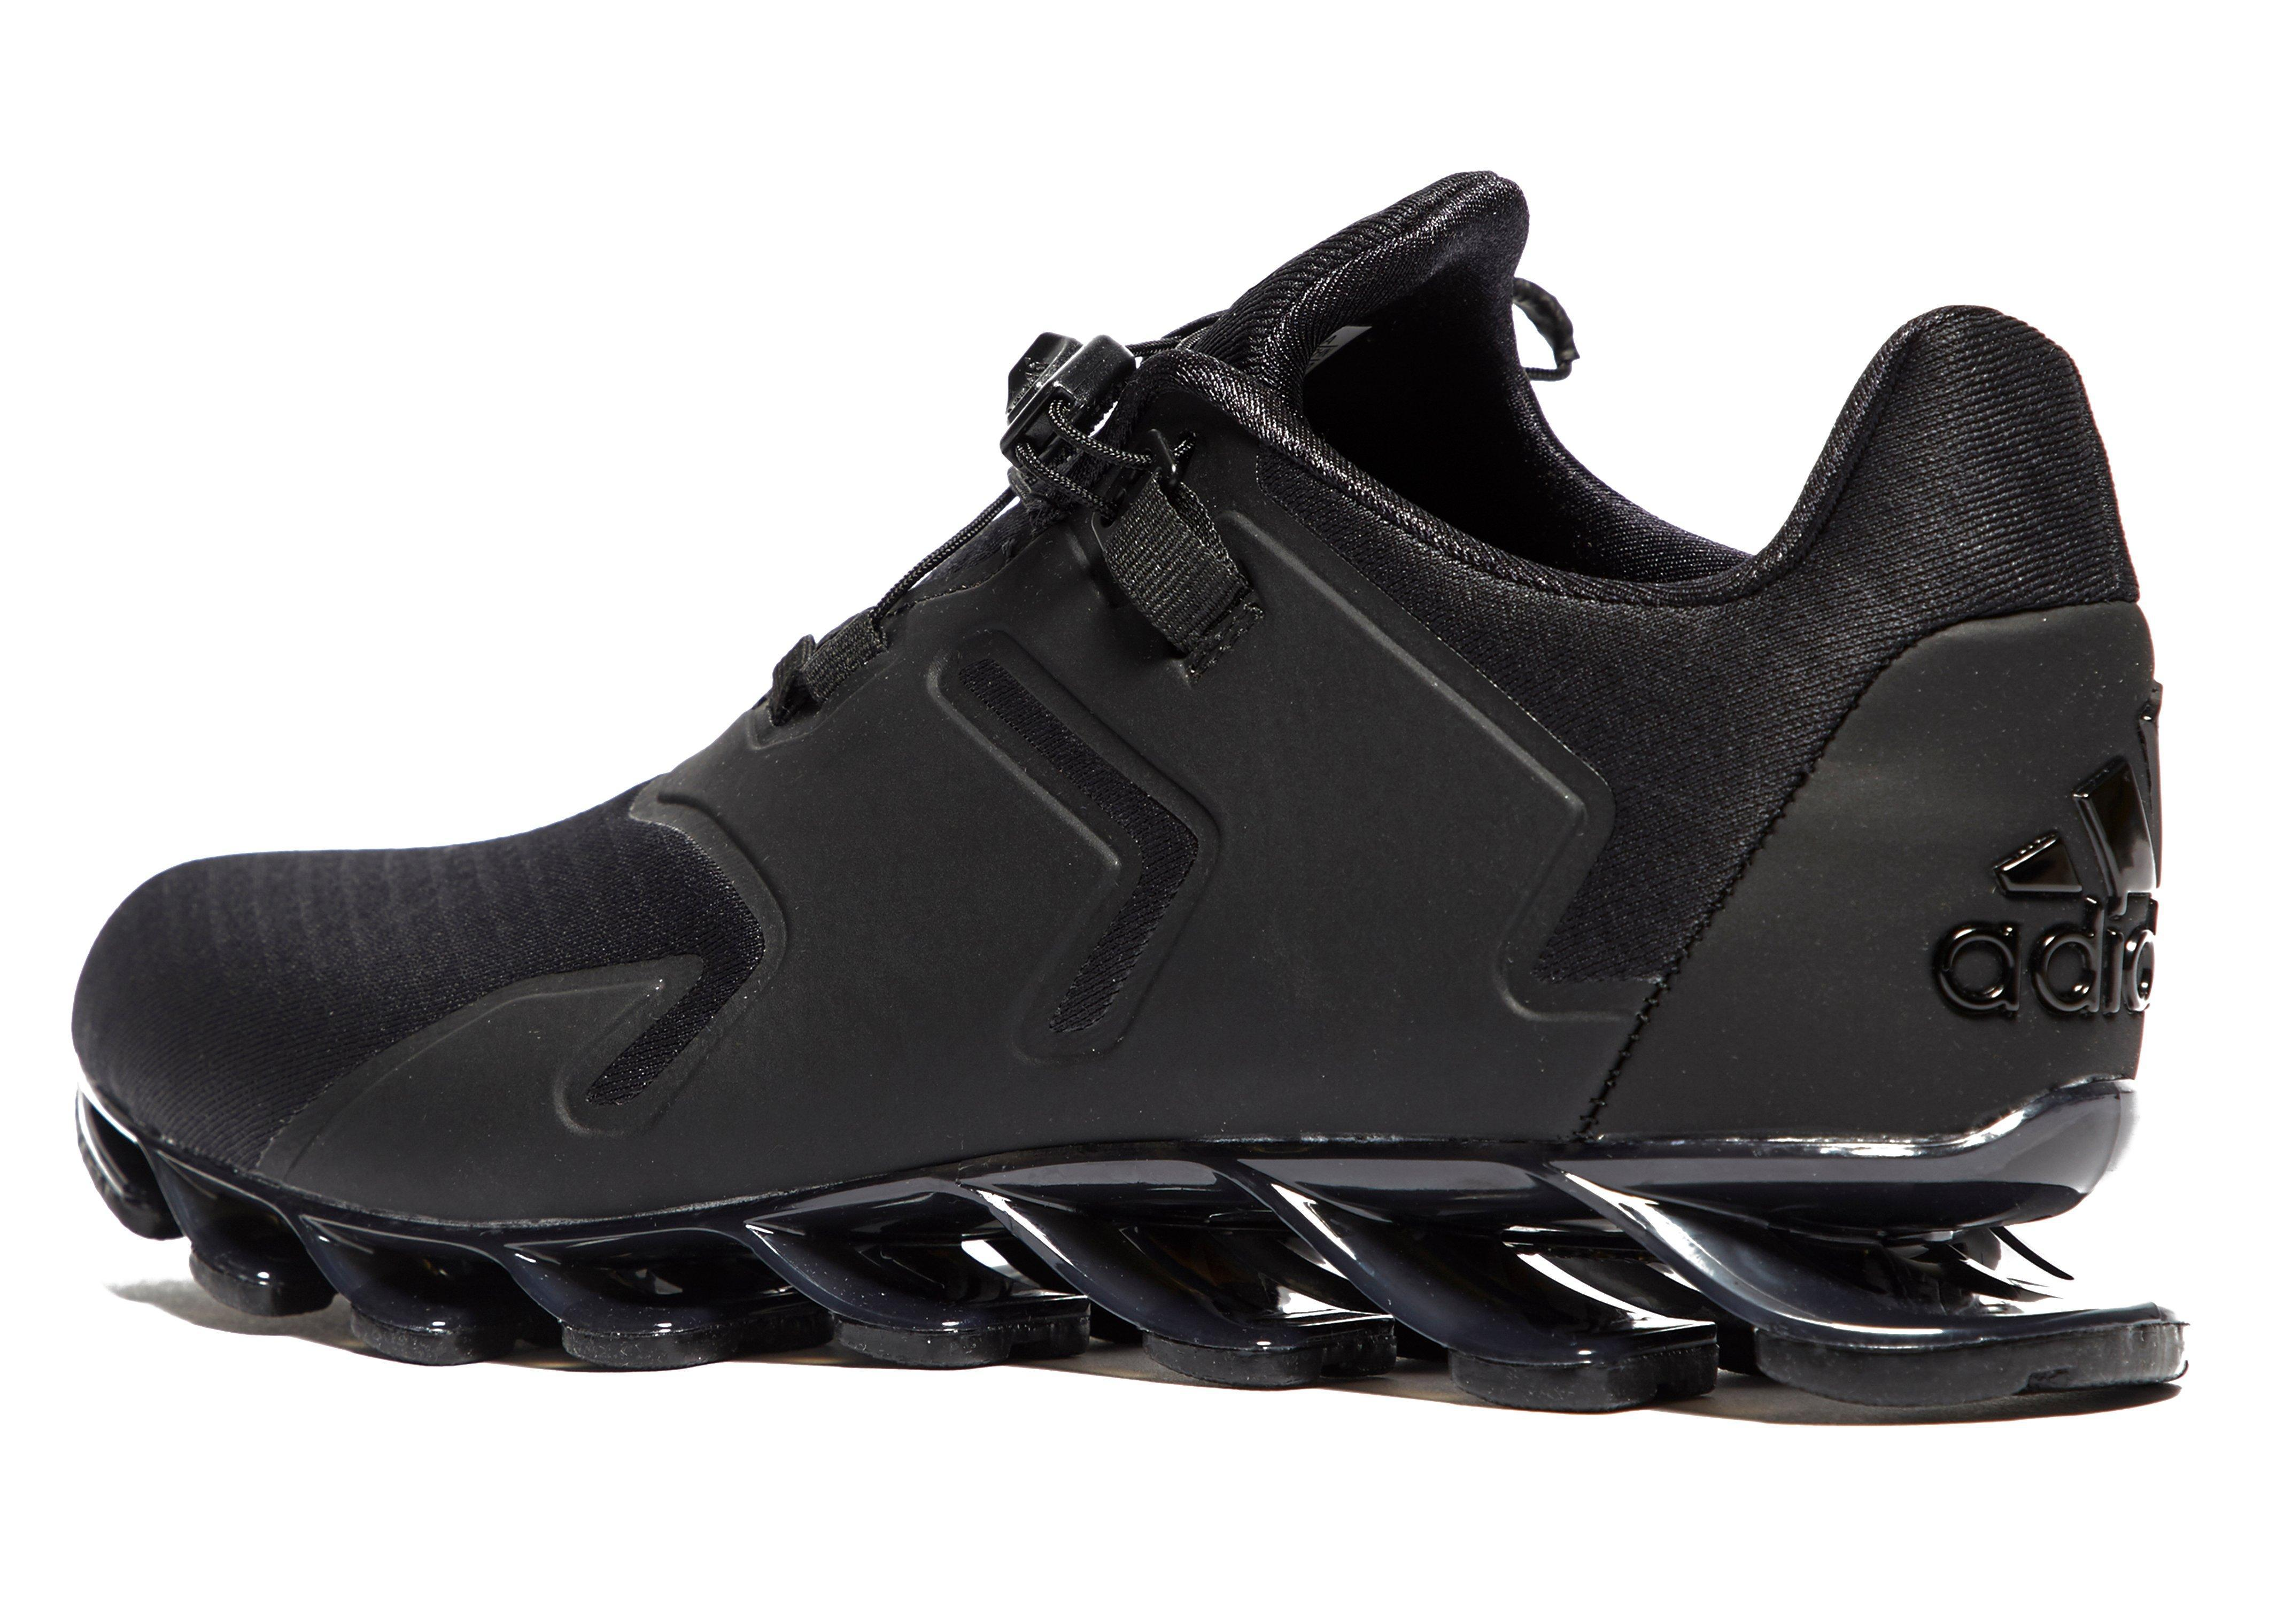 ea35f1b4b01e ... discount lyst adidas springblade solyce running shoes in black for men  366c1 4d93a